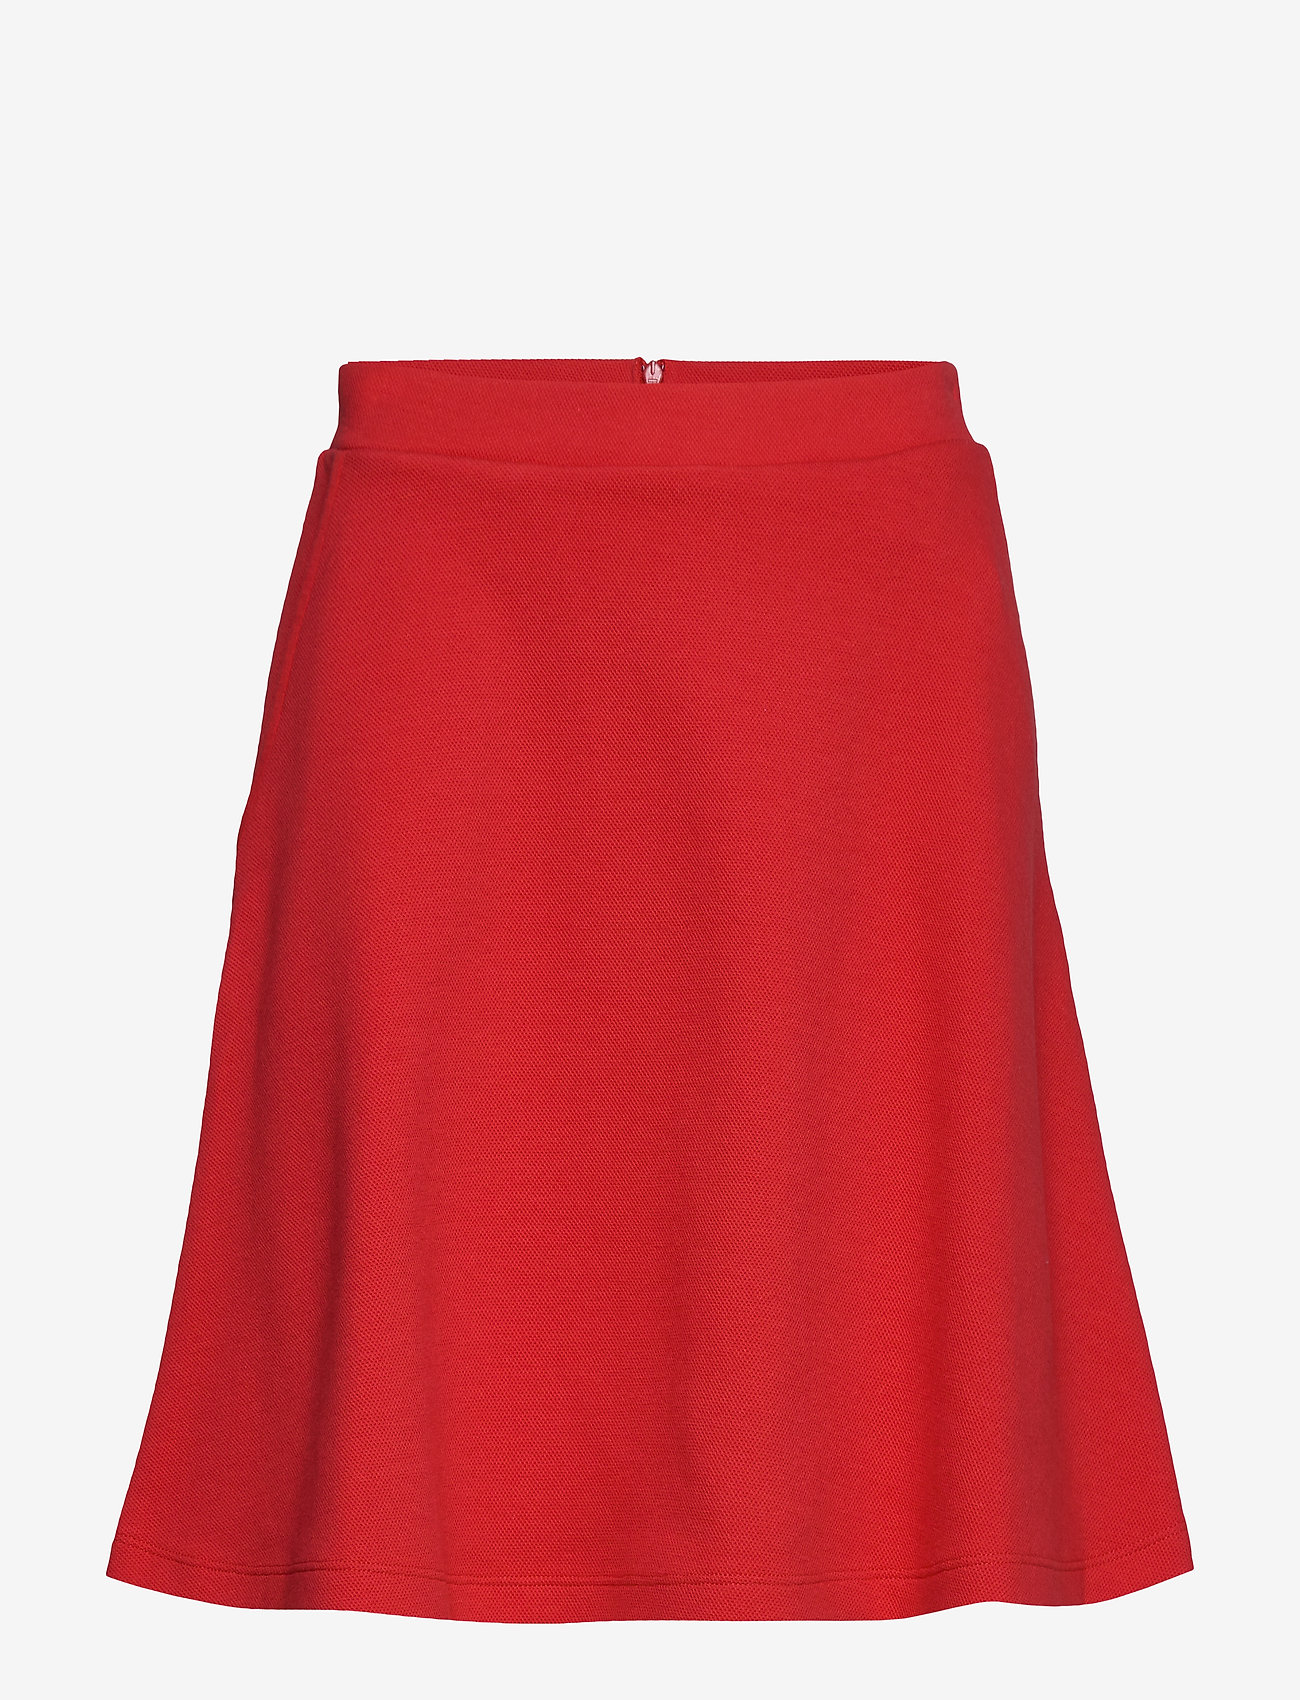 Esprit Casual - Skirts knitted - short skirts - dark red - 0